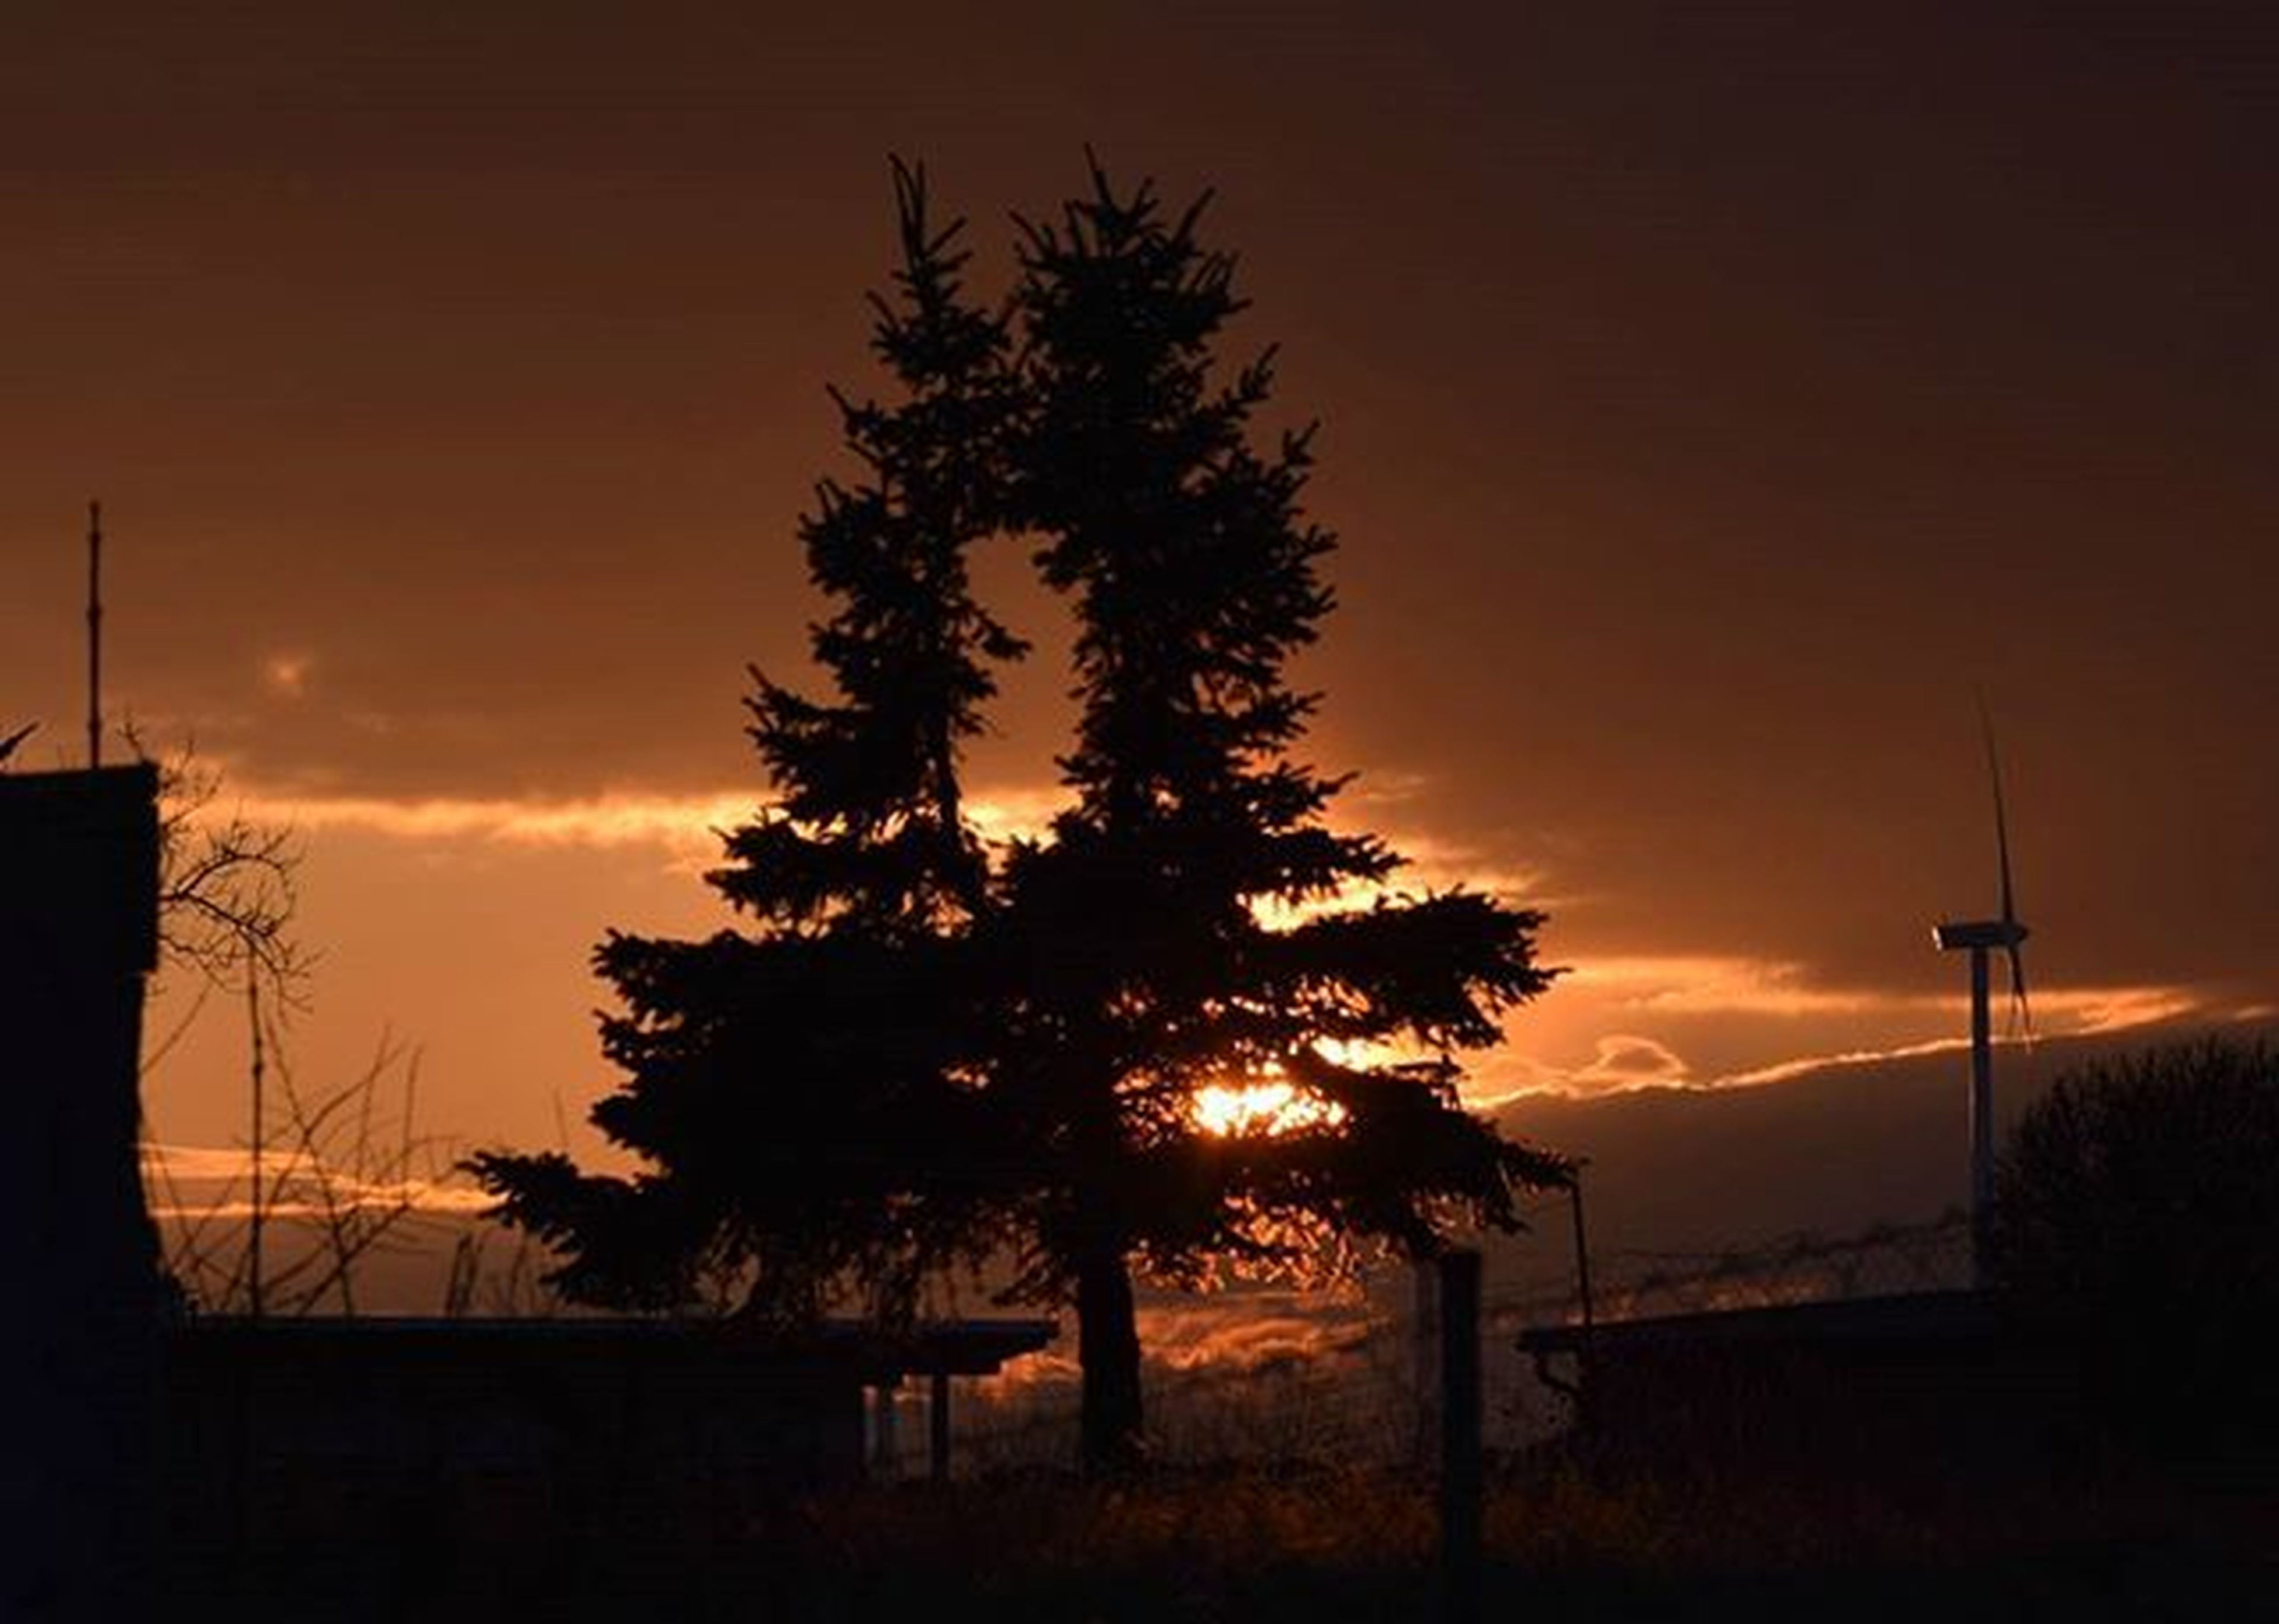 sunset, silhouette, orange color, tree, sky, tranquility, beauty in nature, scenics, street light, tranquil scene, nature, idyllic, sun, low angle view, dark, outdoors, no people, lighting equipment, growth, landscape